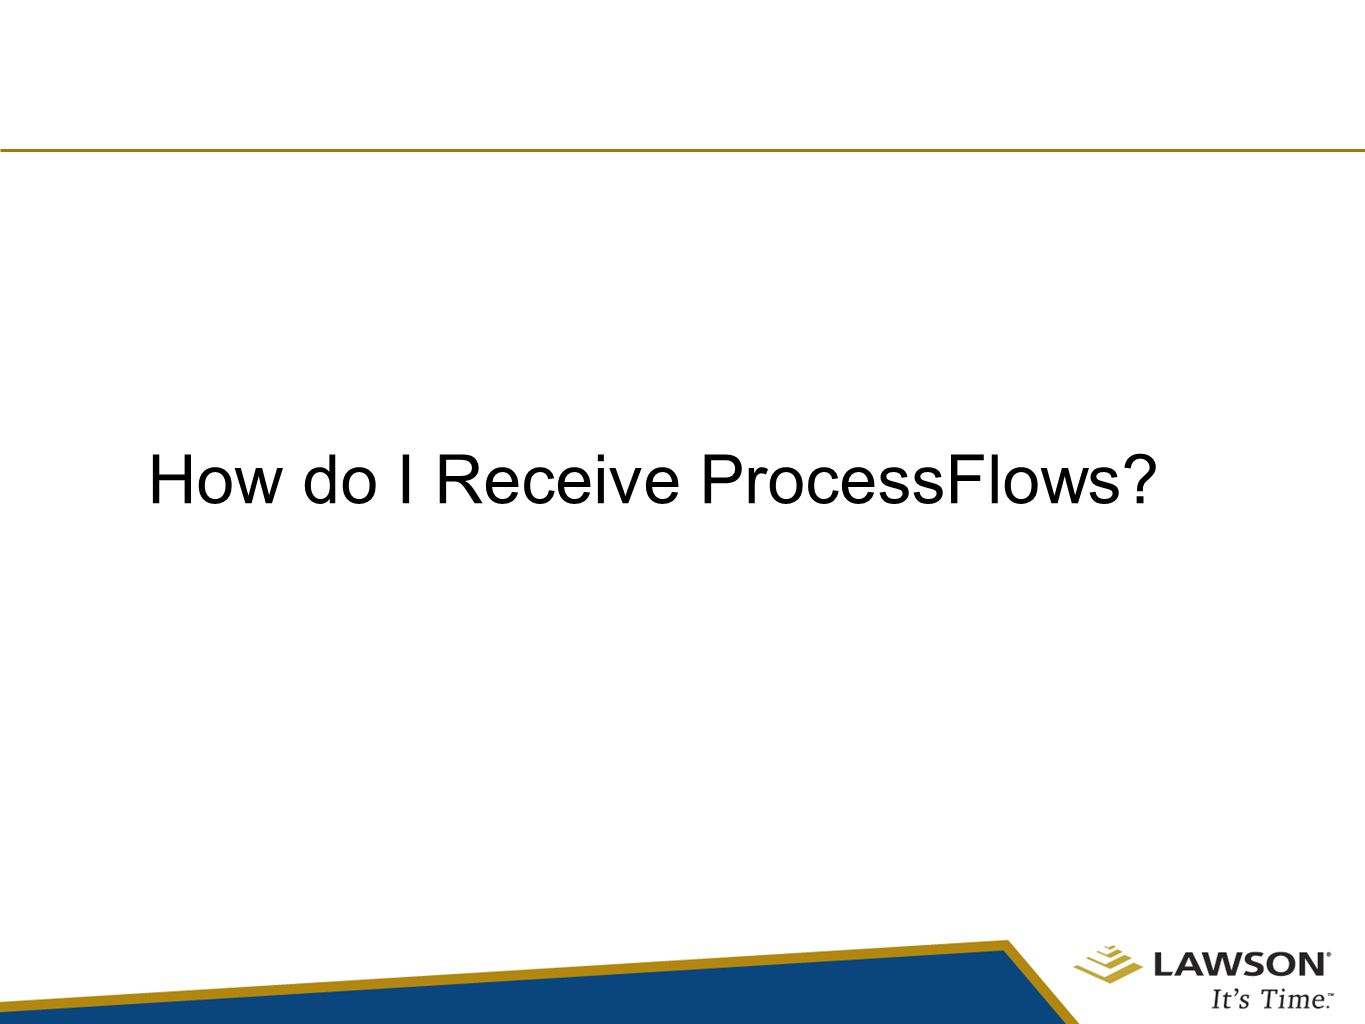 How do I Receive ProcessFlows?